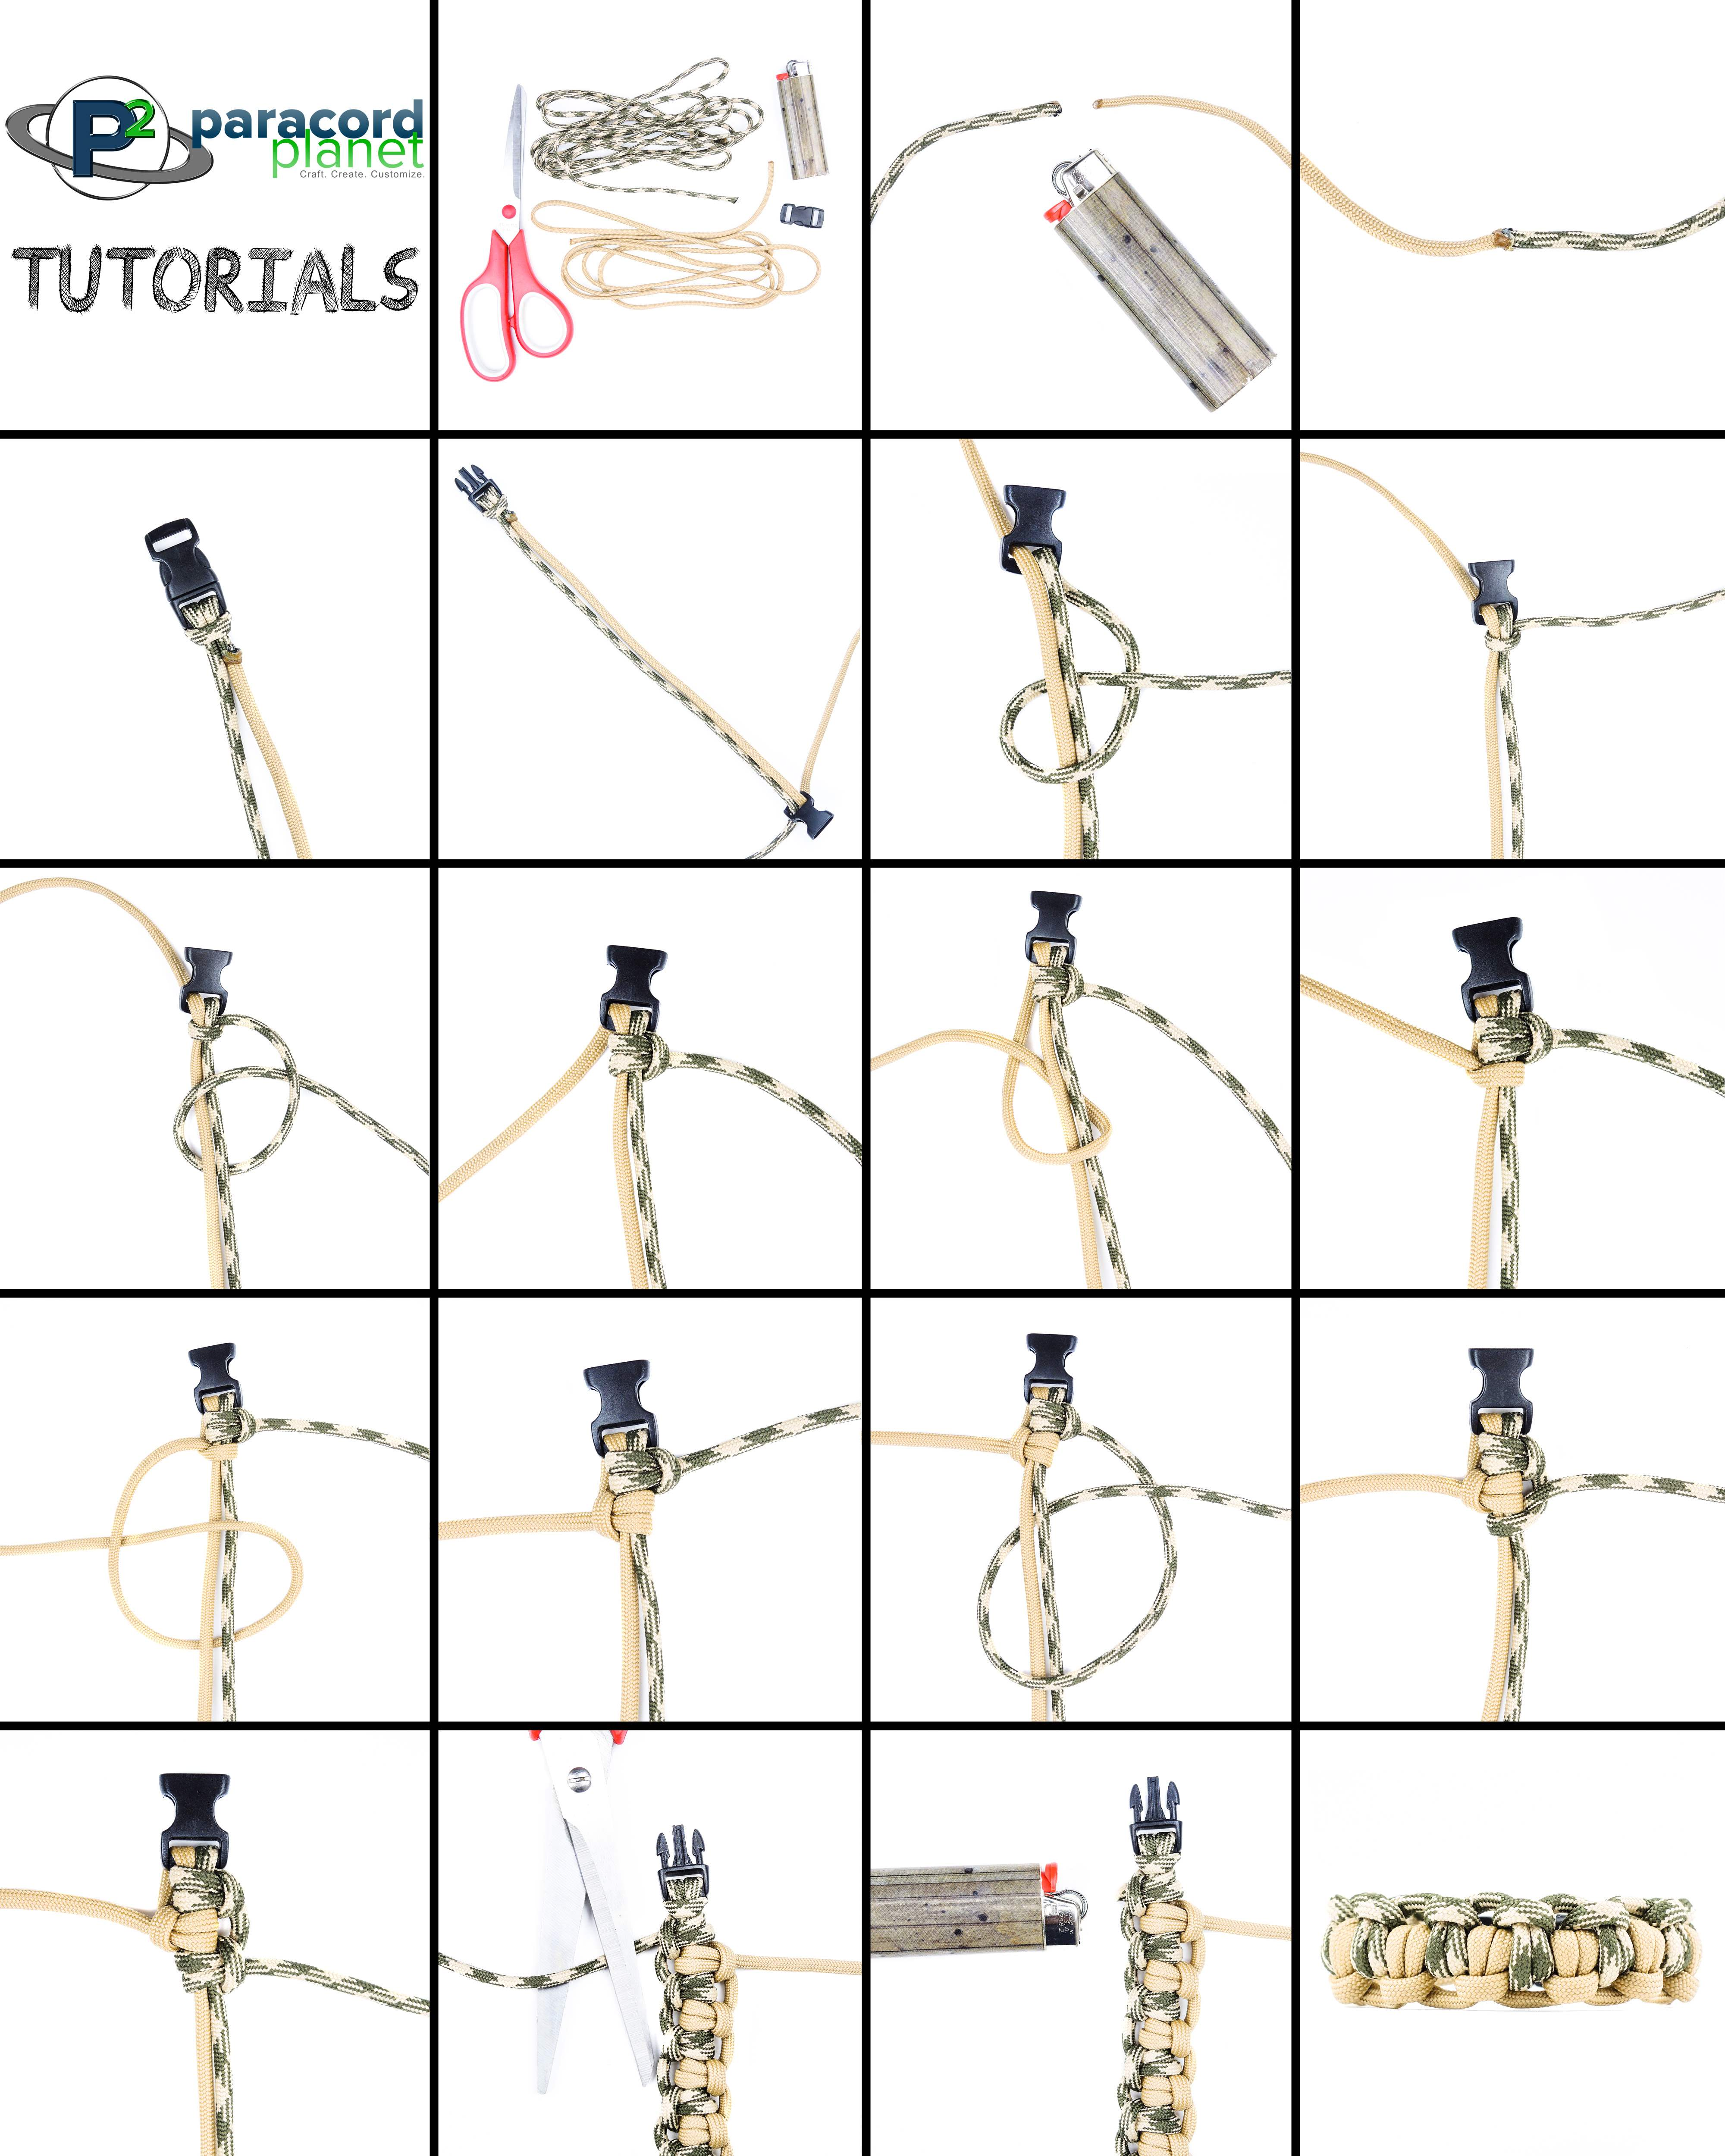 Paracord Double Tatted Bar Bracelet photo tutorial